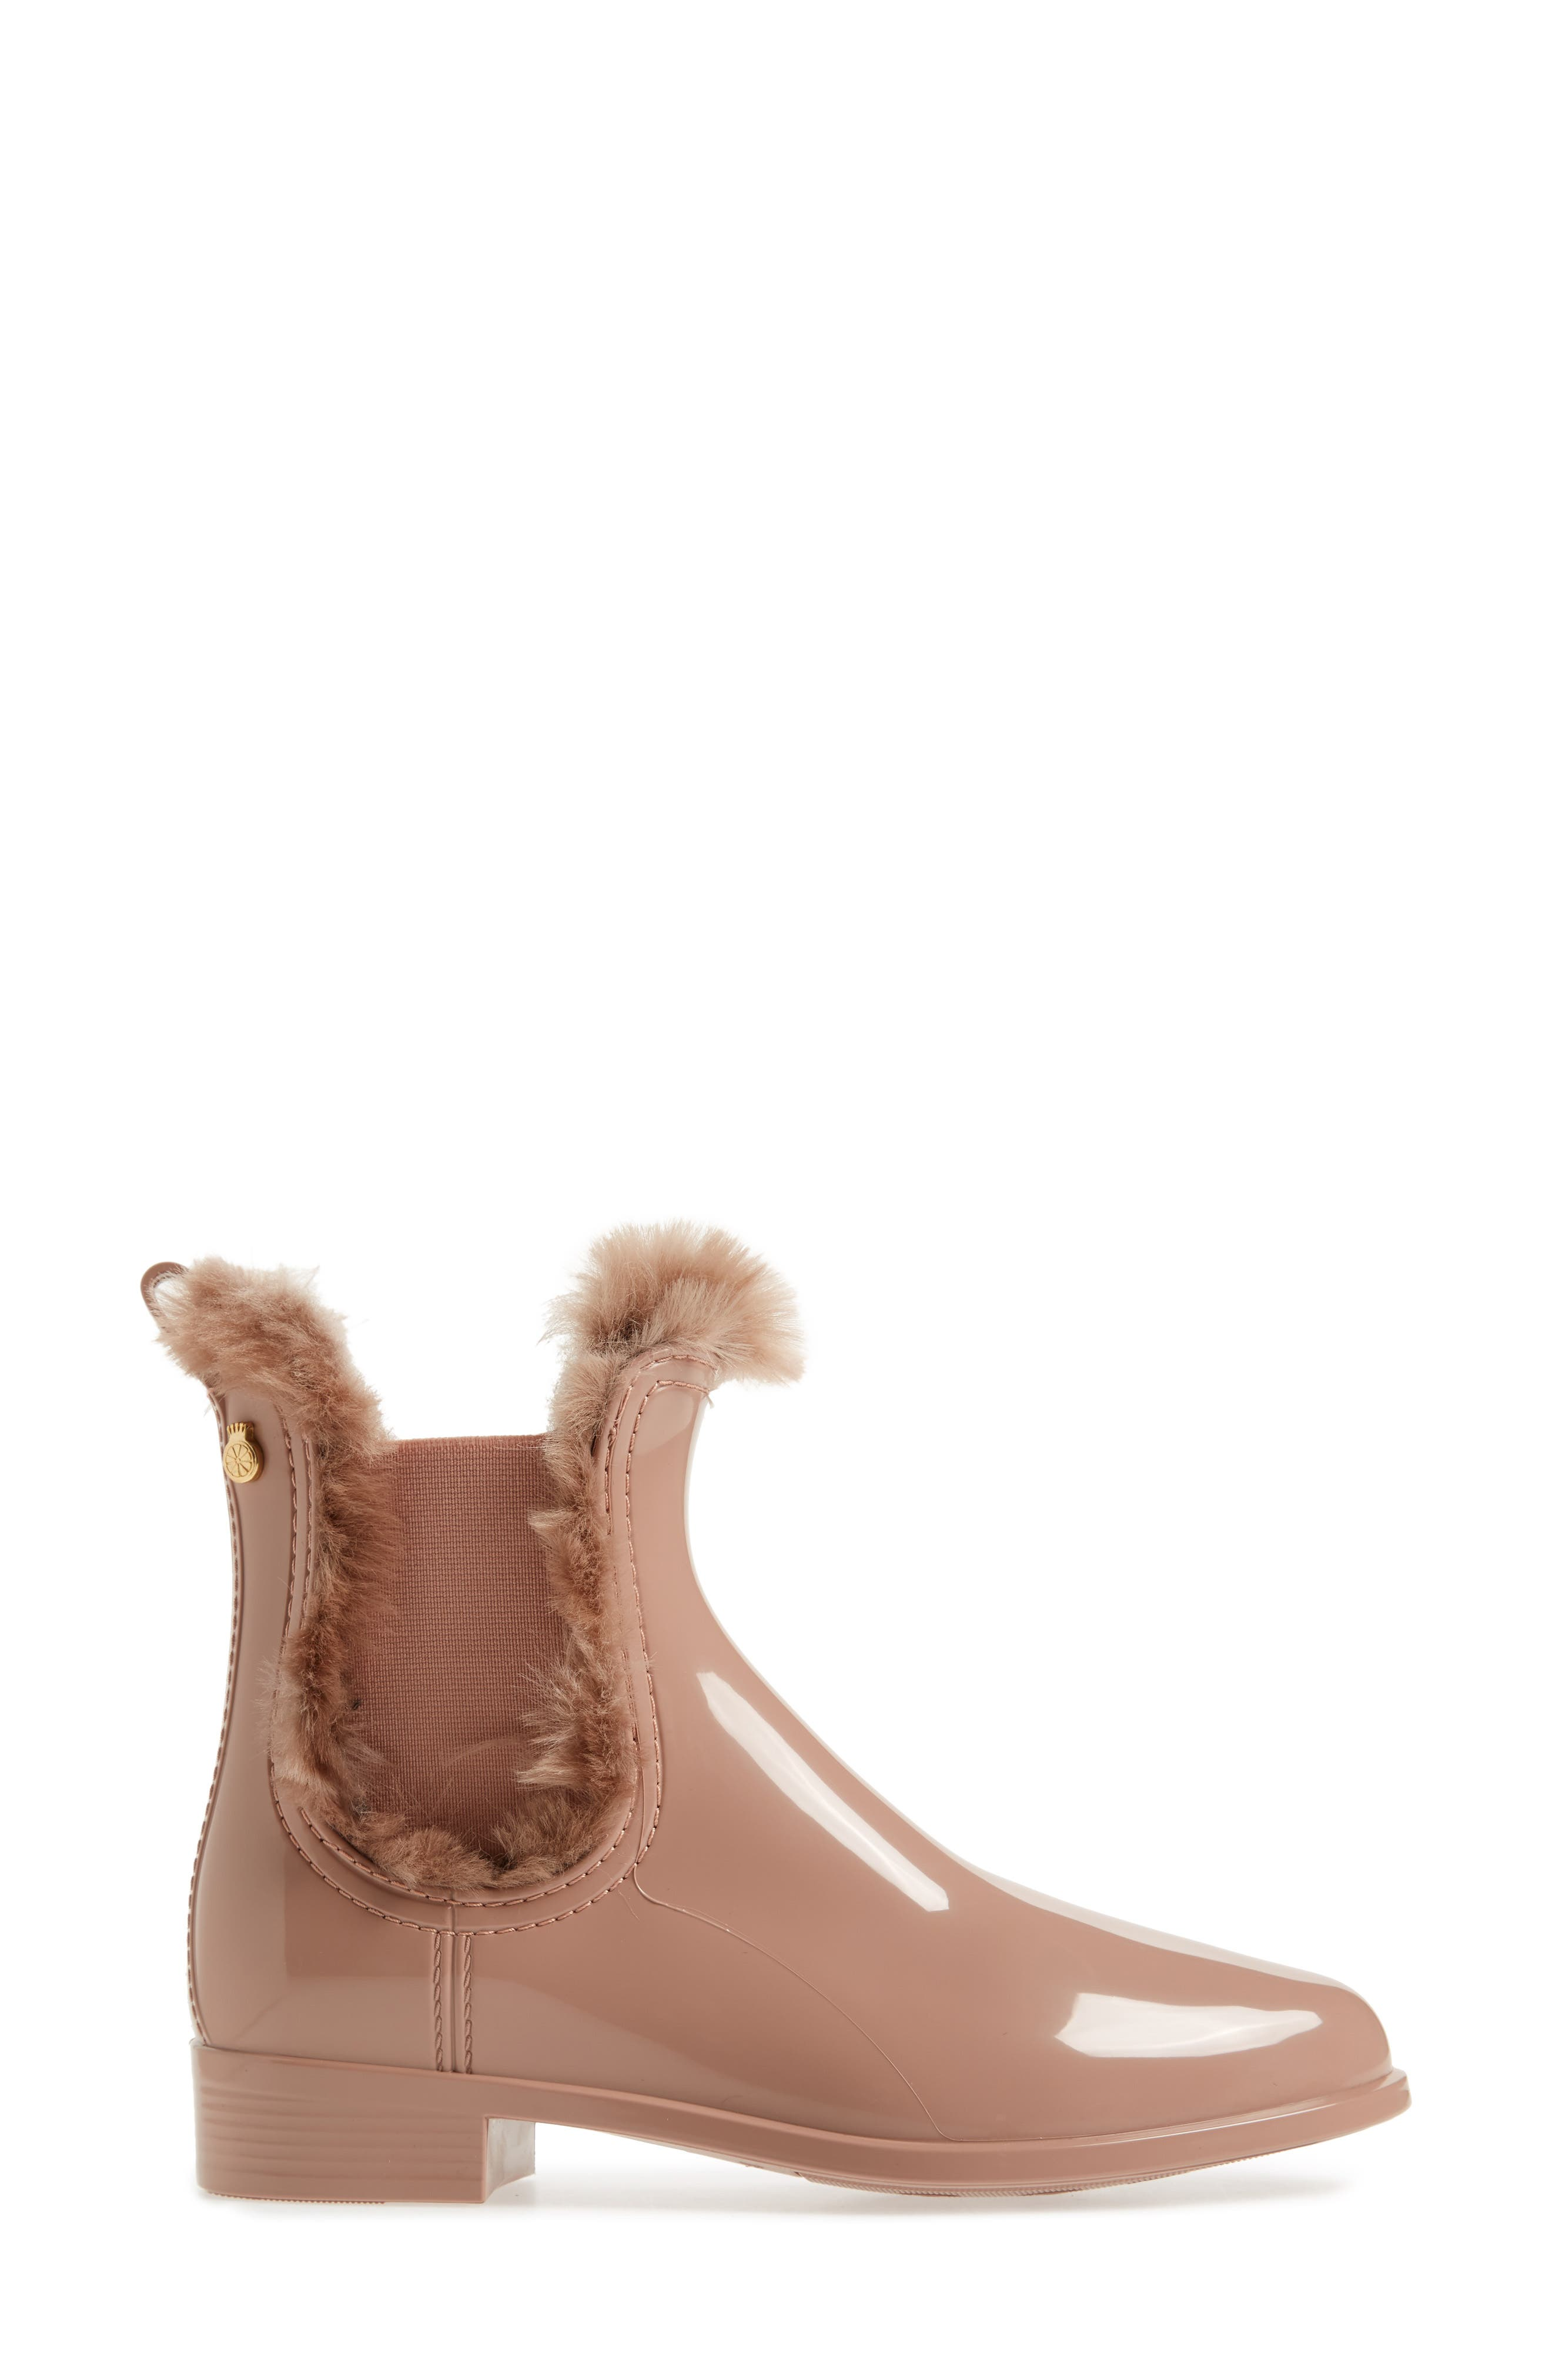 Alternate Image 3  - Lemon Jelly Aisha Waterproof Chelsea Boot with Faux Fur Lining (Women)